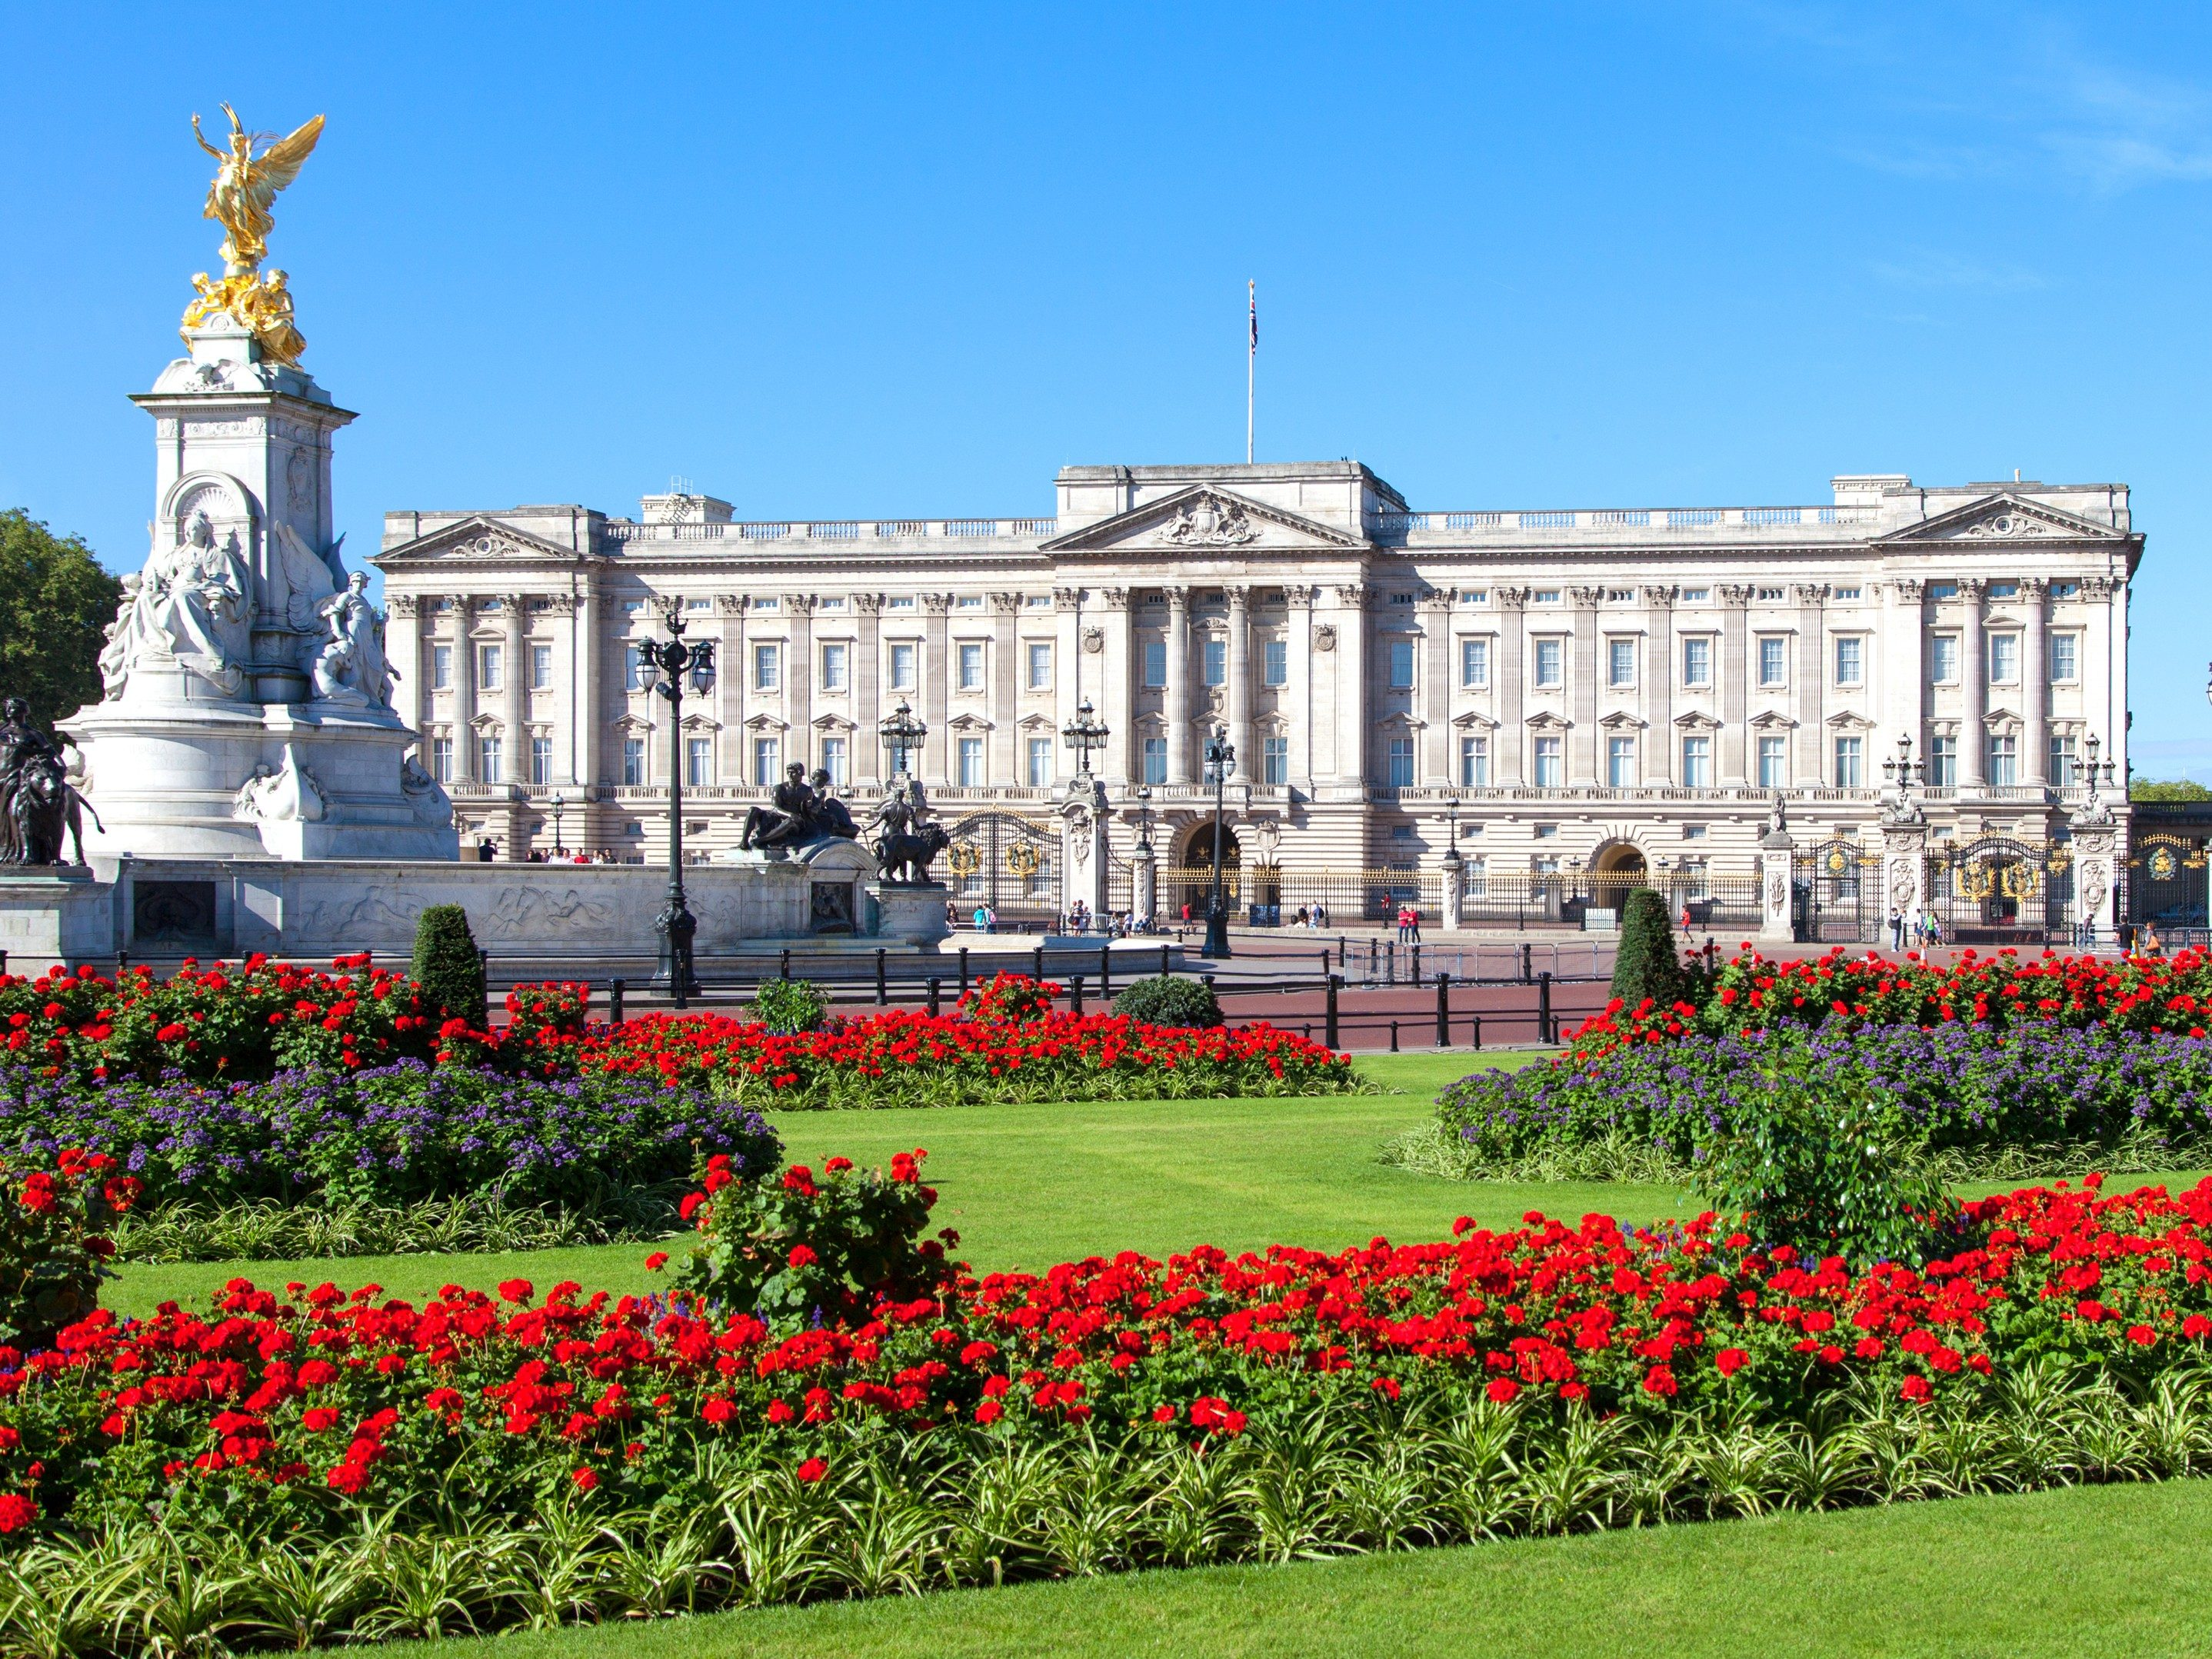 London attractions: Buckingham Palace